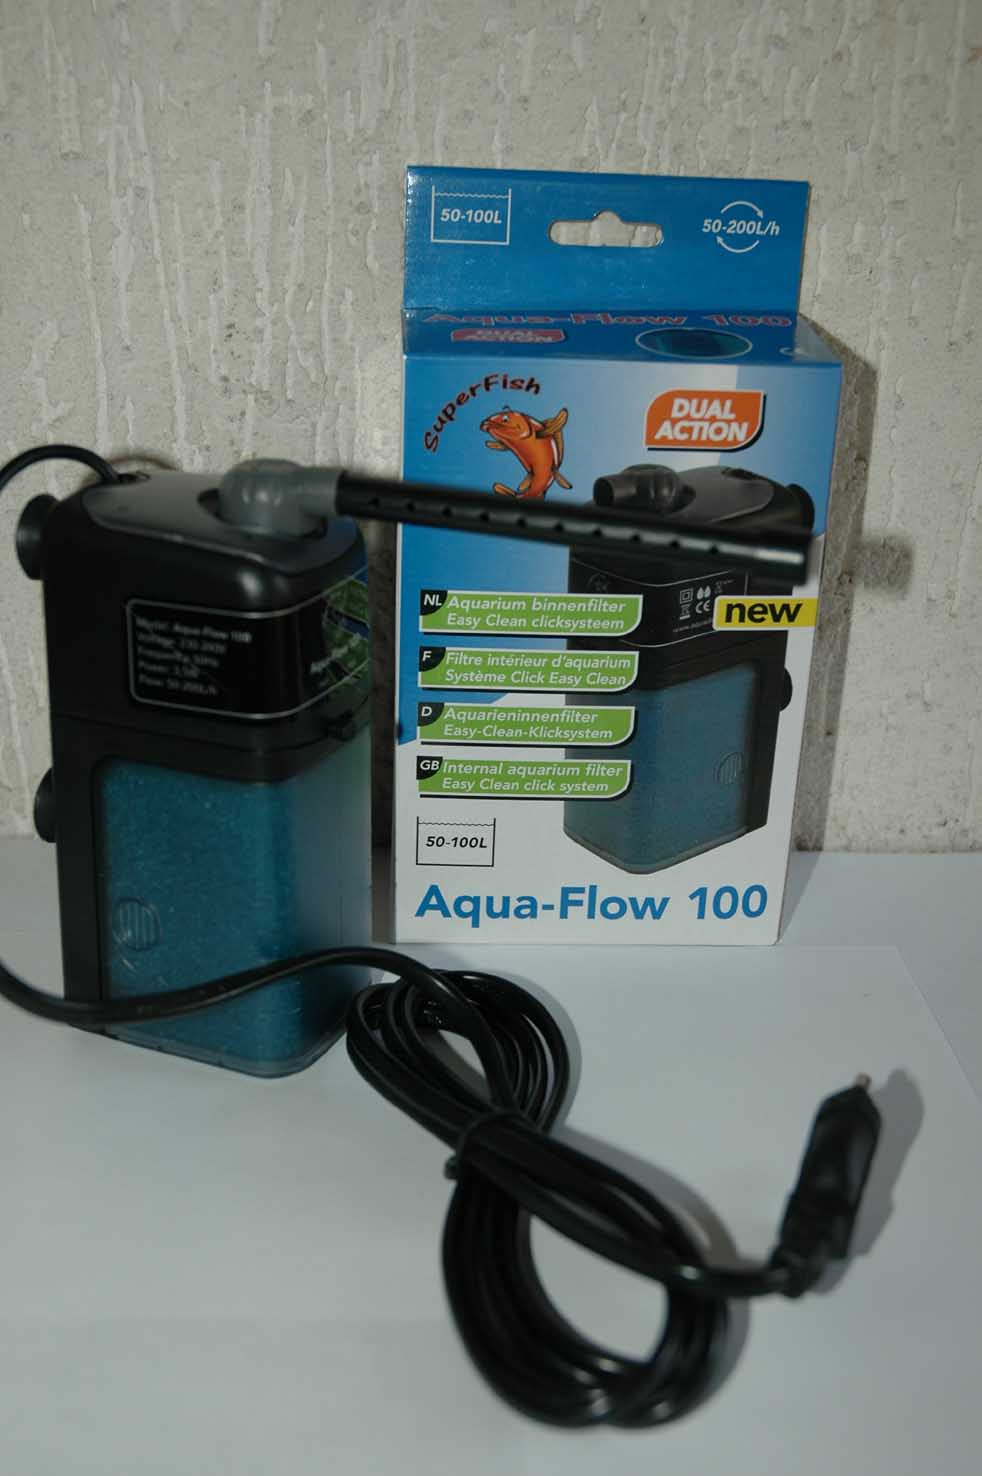 aqua flow 100 binnenfilter welkom bij aquarium aqua flow binnen filters. Black Bedroom Furniture Sets. Home Design Ideas